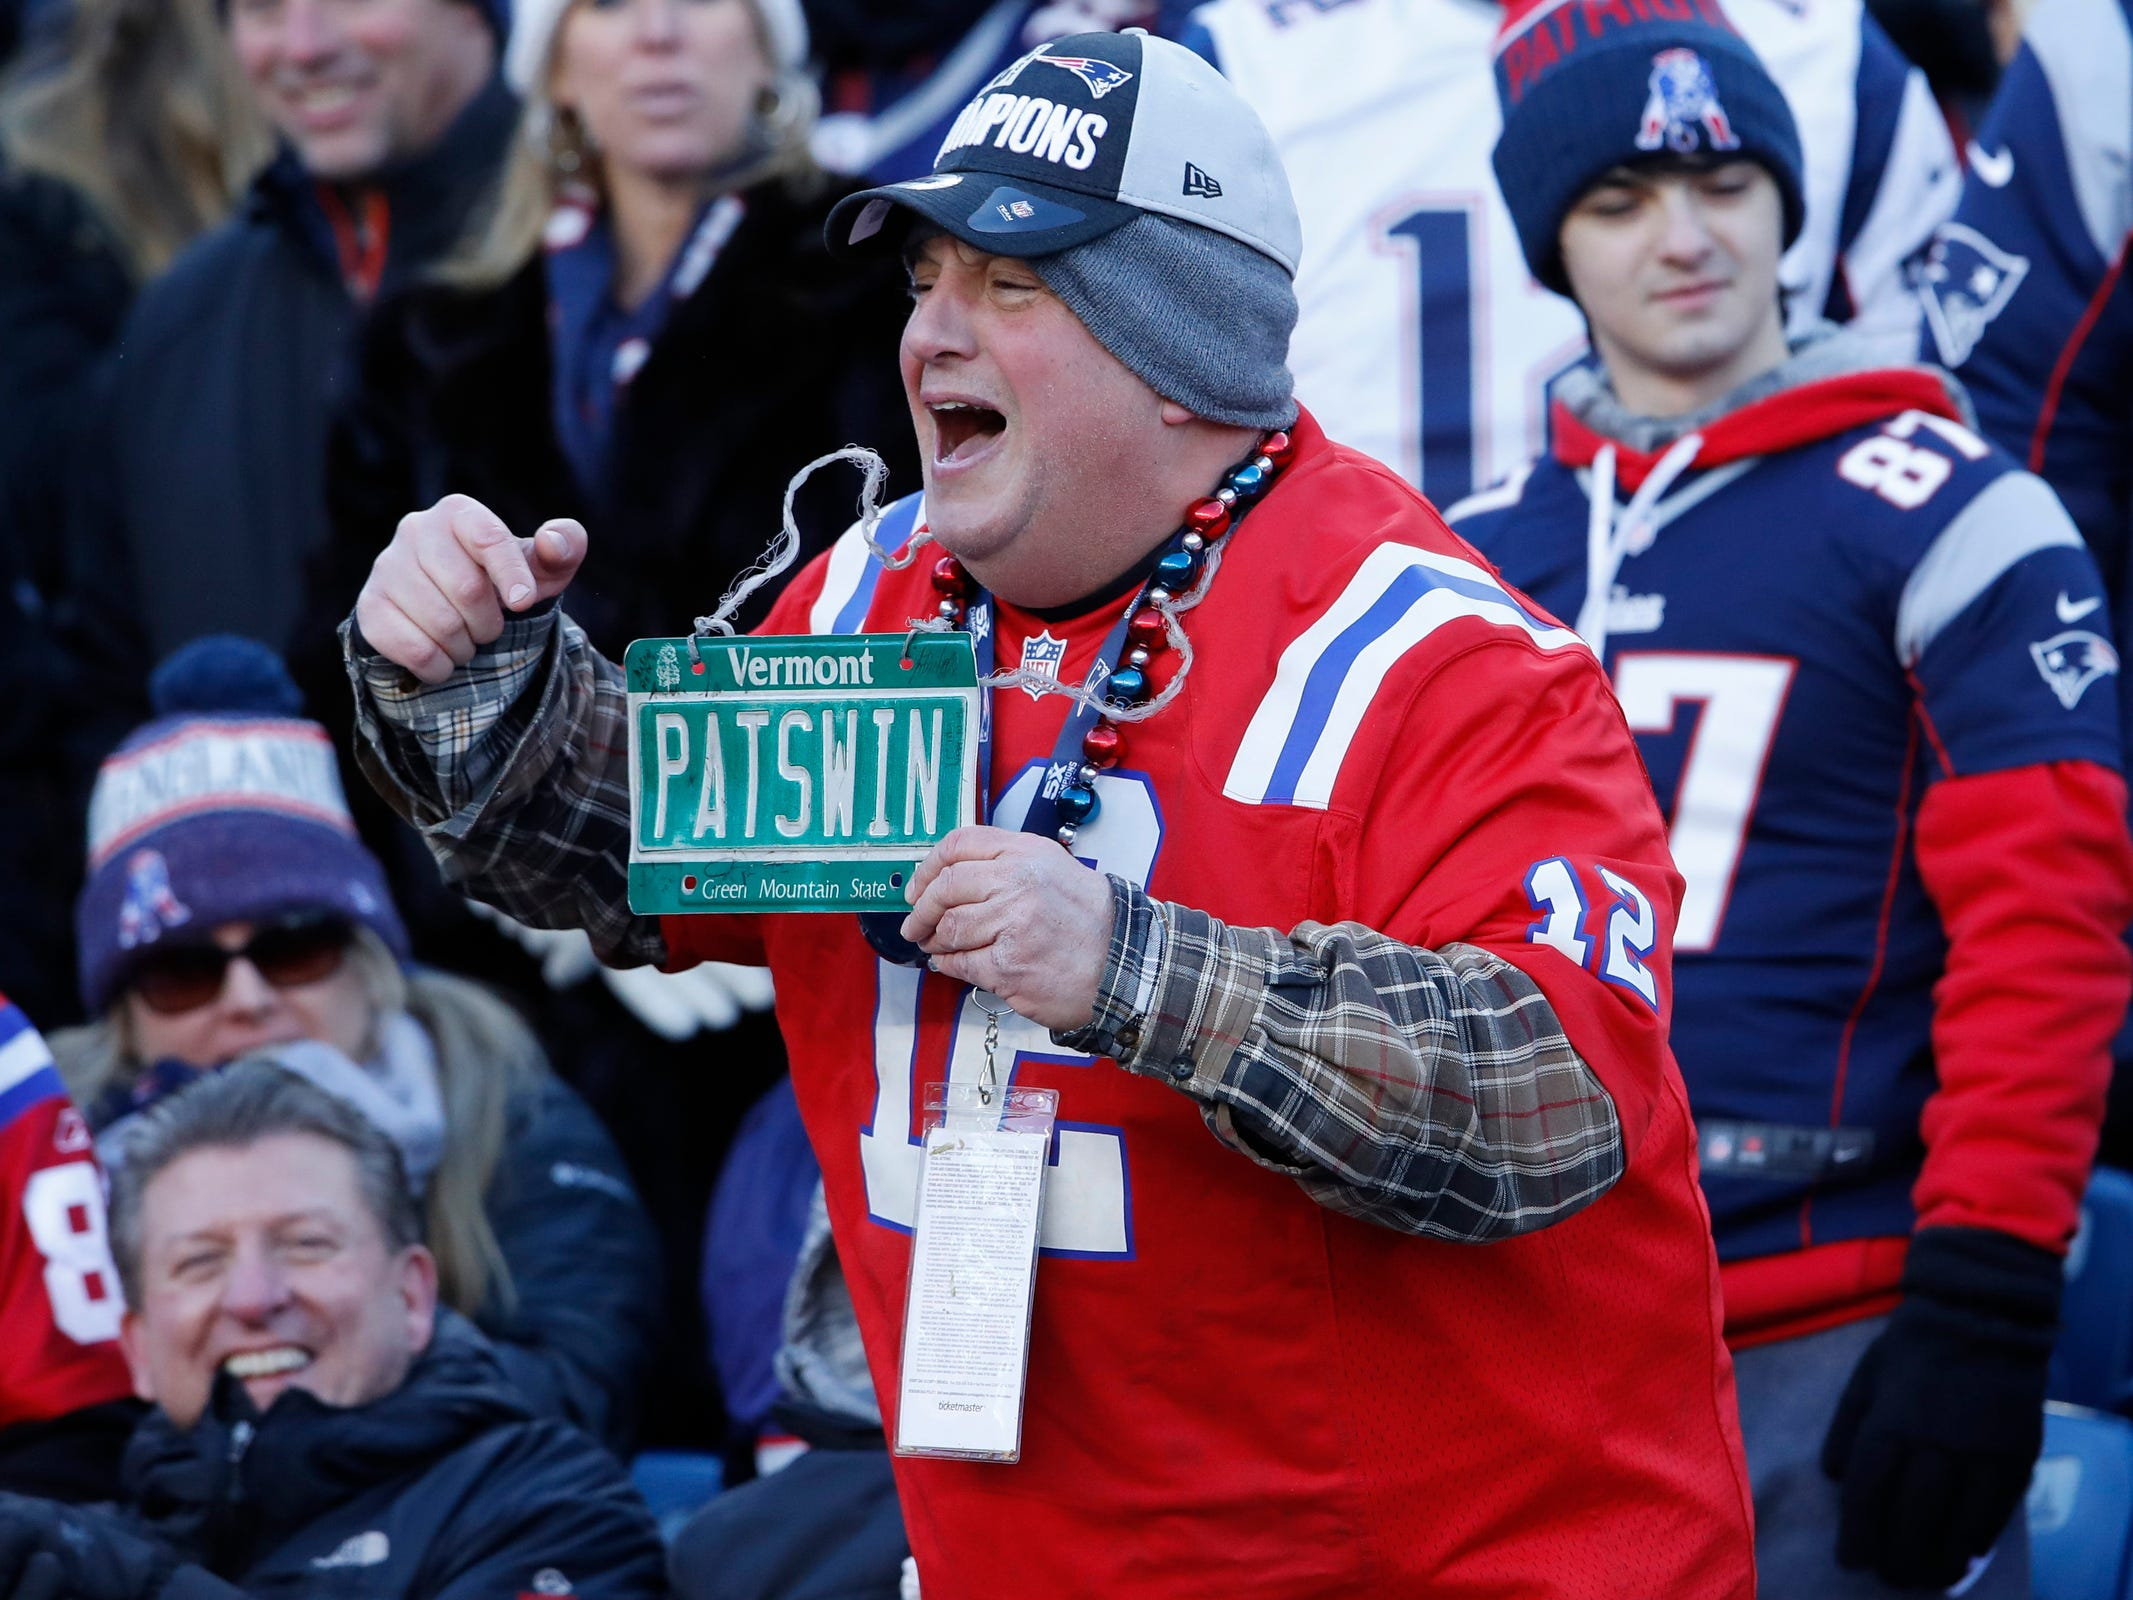 A New England Patriots fan cheers as the Patriots take on the New York Jets in the first half at Gillette Stadium.